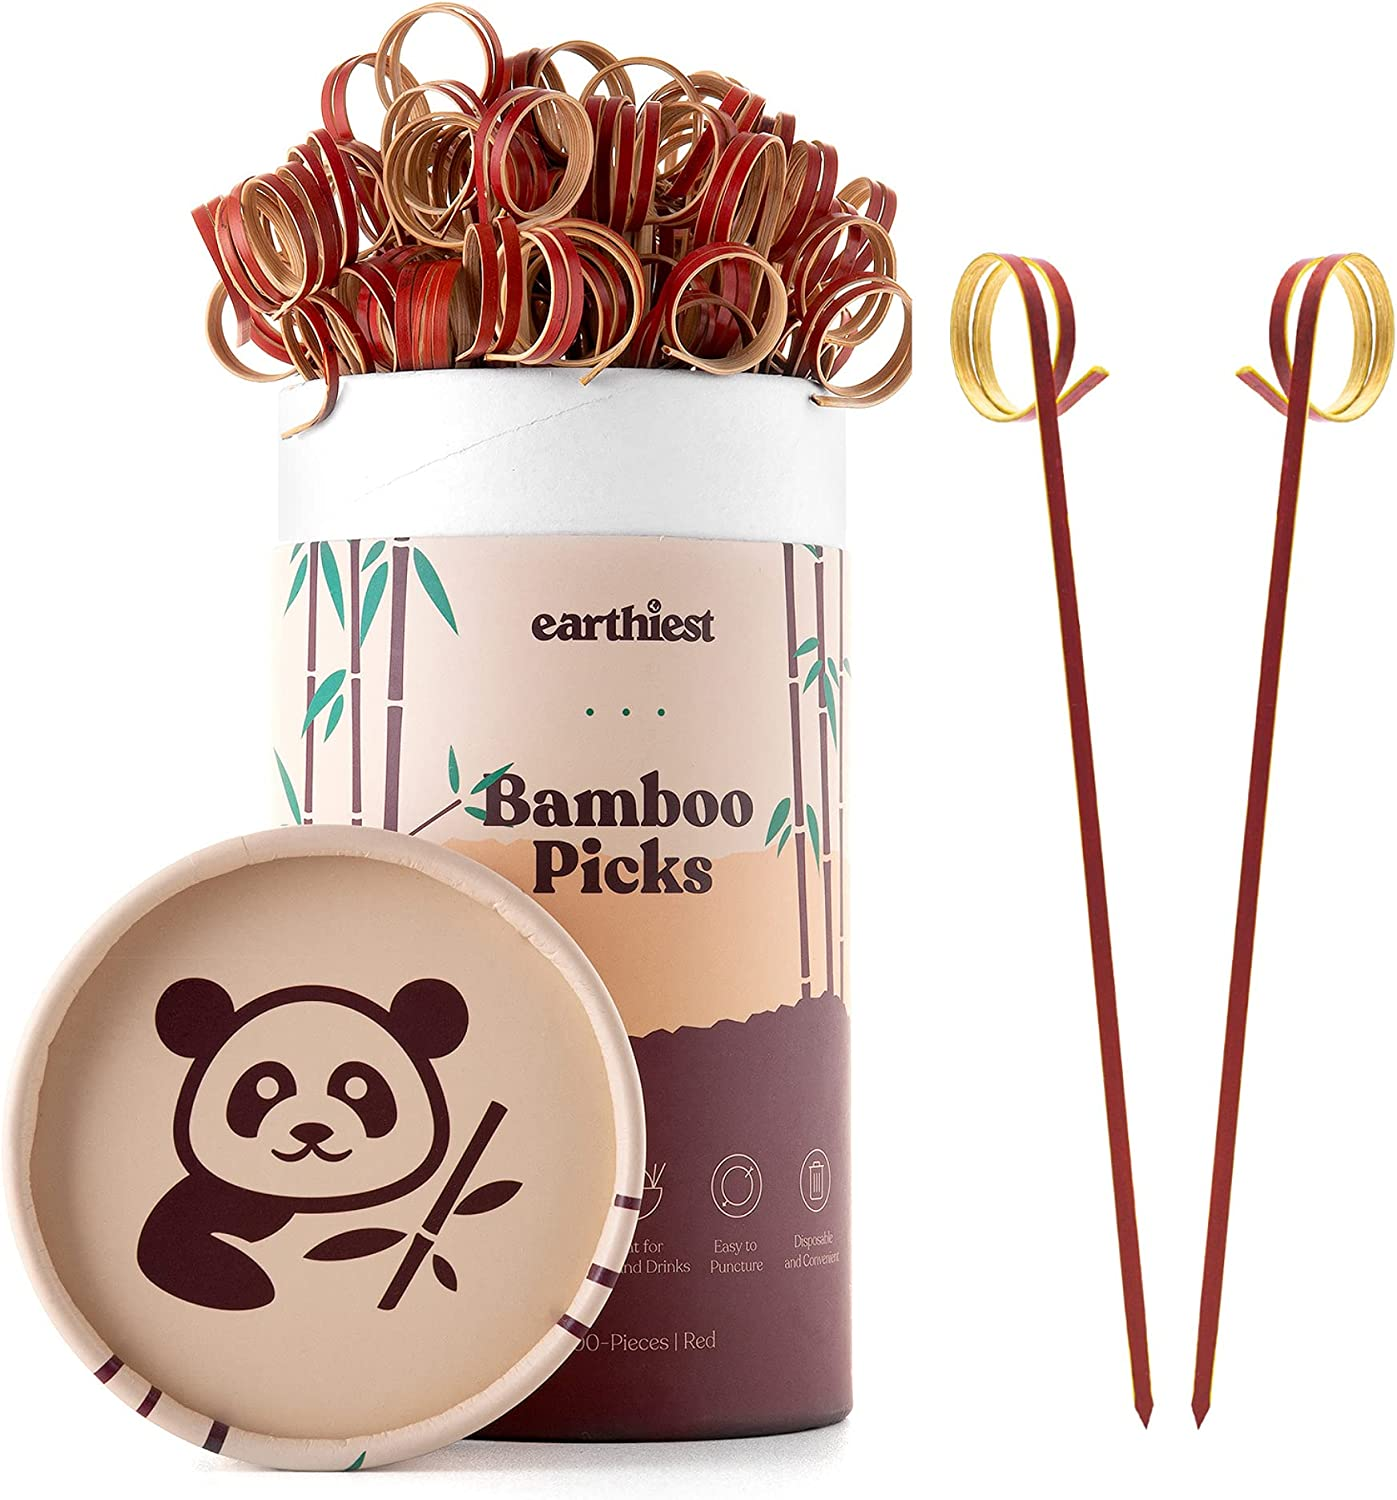 Bamboo Loop Cocktail Picks for Appetizers – 6 inch Red Bamboo Skewers (100 Pack) – Bamboo Food Picks – Party Toothpicks for Appetizers Fruits and Cocktail Drinks